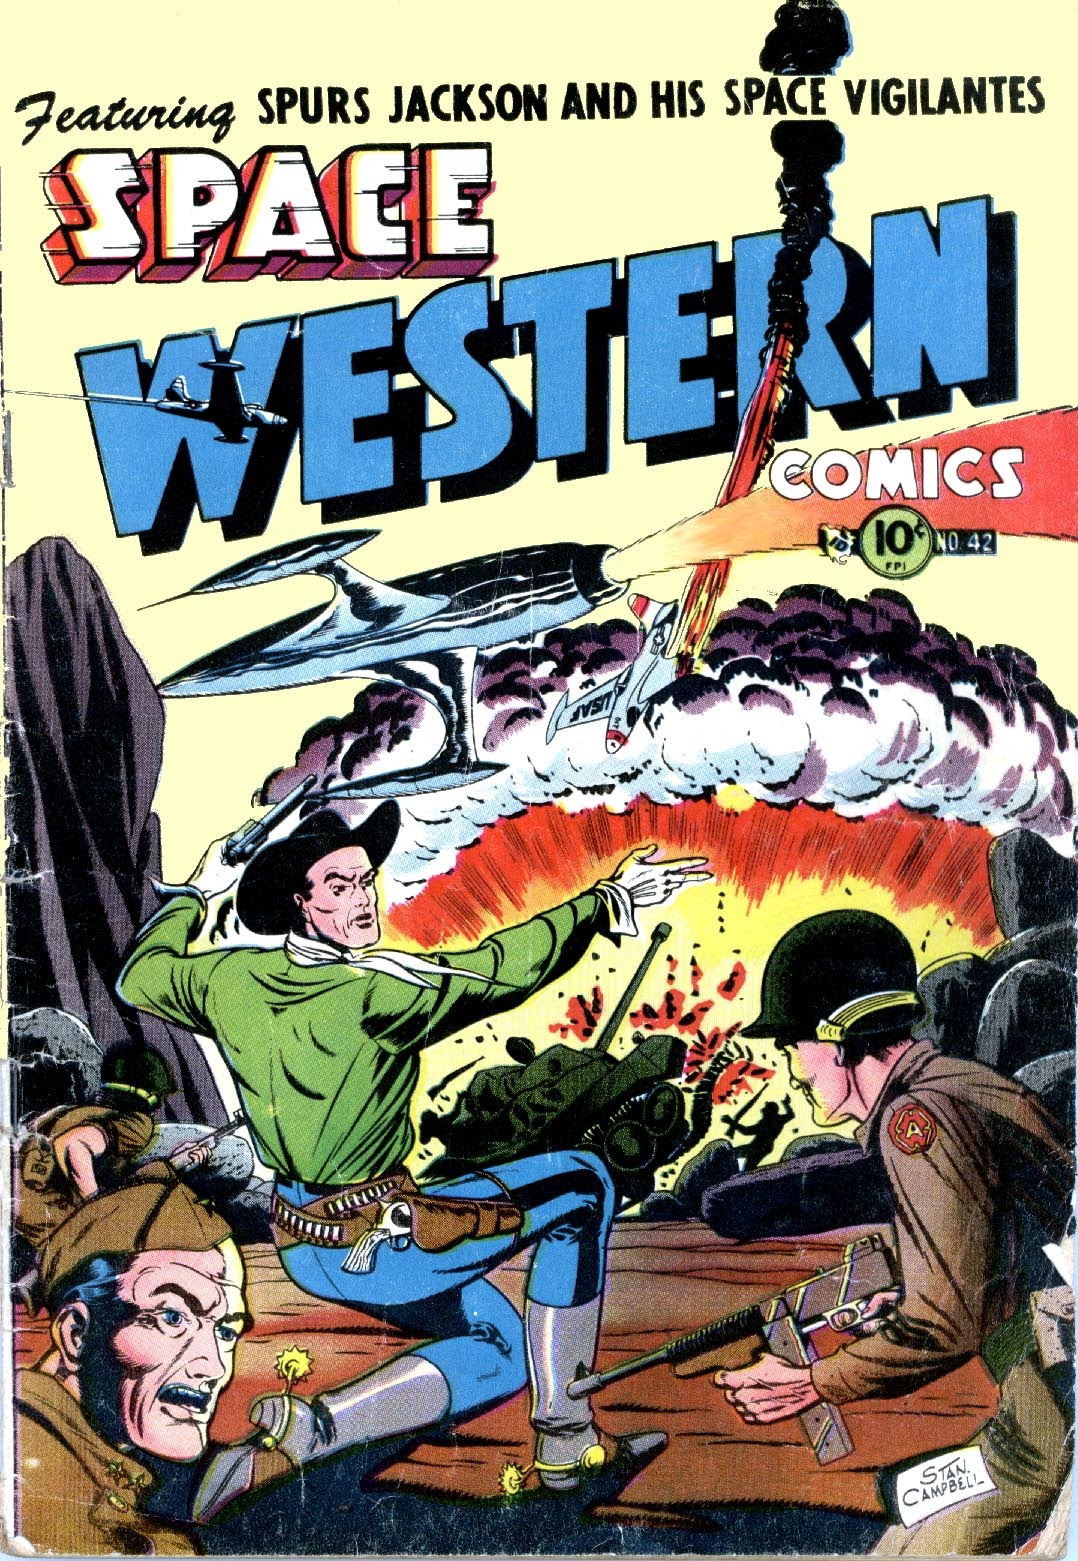 Space Western Comics issue 42 - Page 1